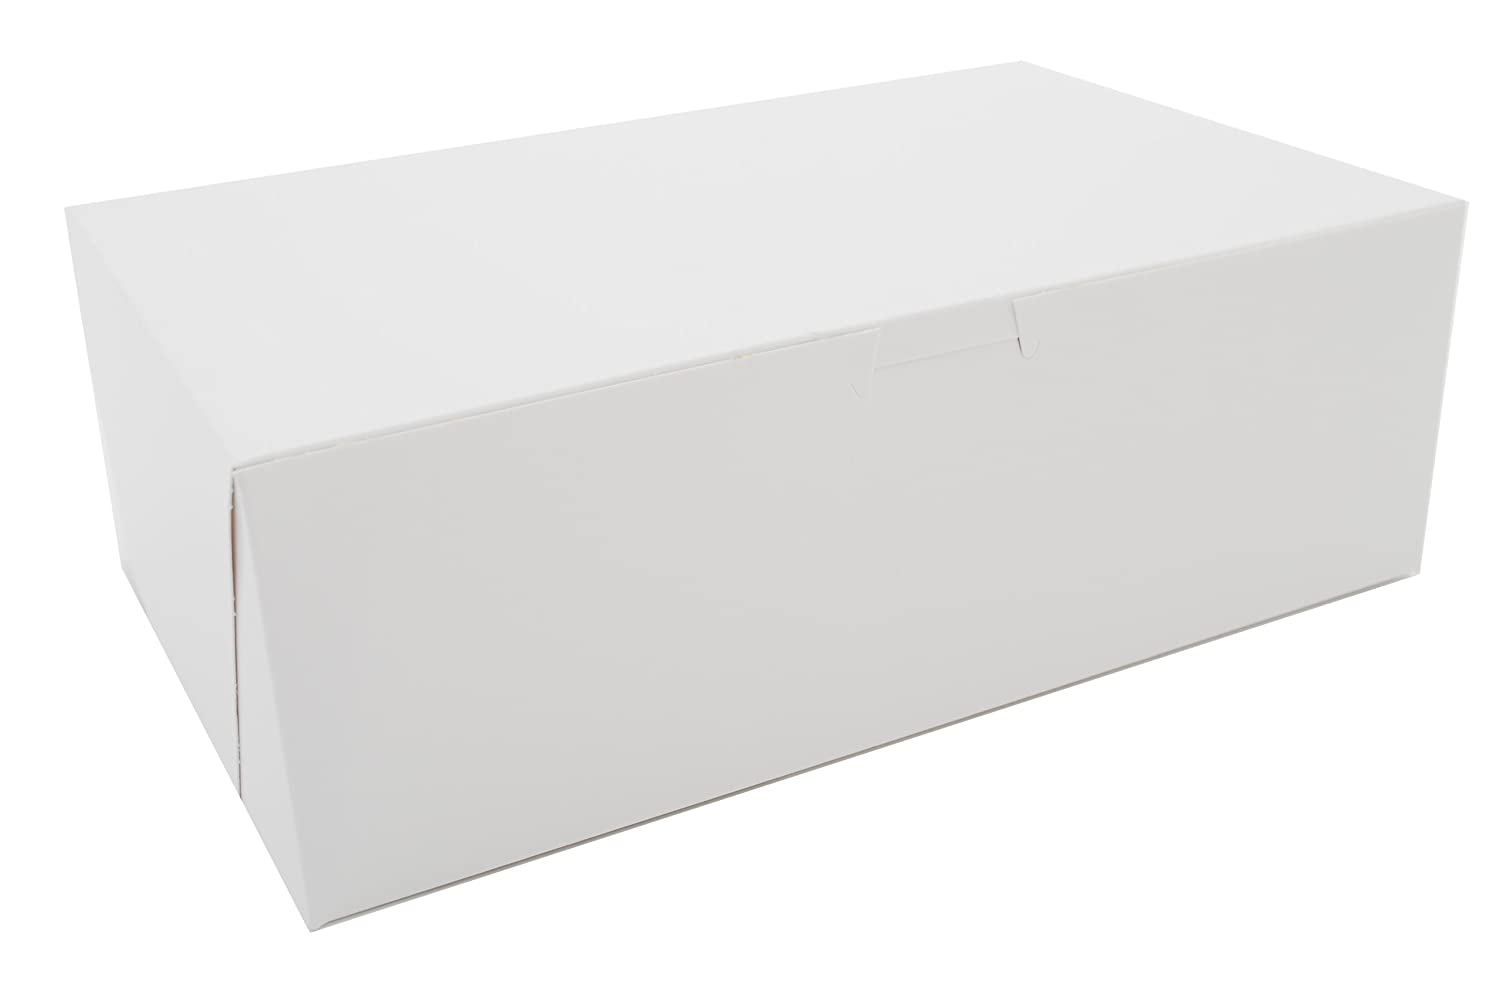 Southern Champion Tray 1018 Premium Clay Coated Kraft Paperboard White Donut Box, 10-3/4